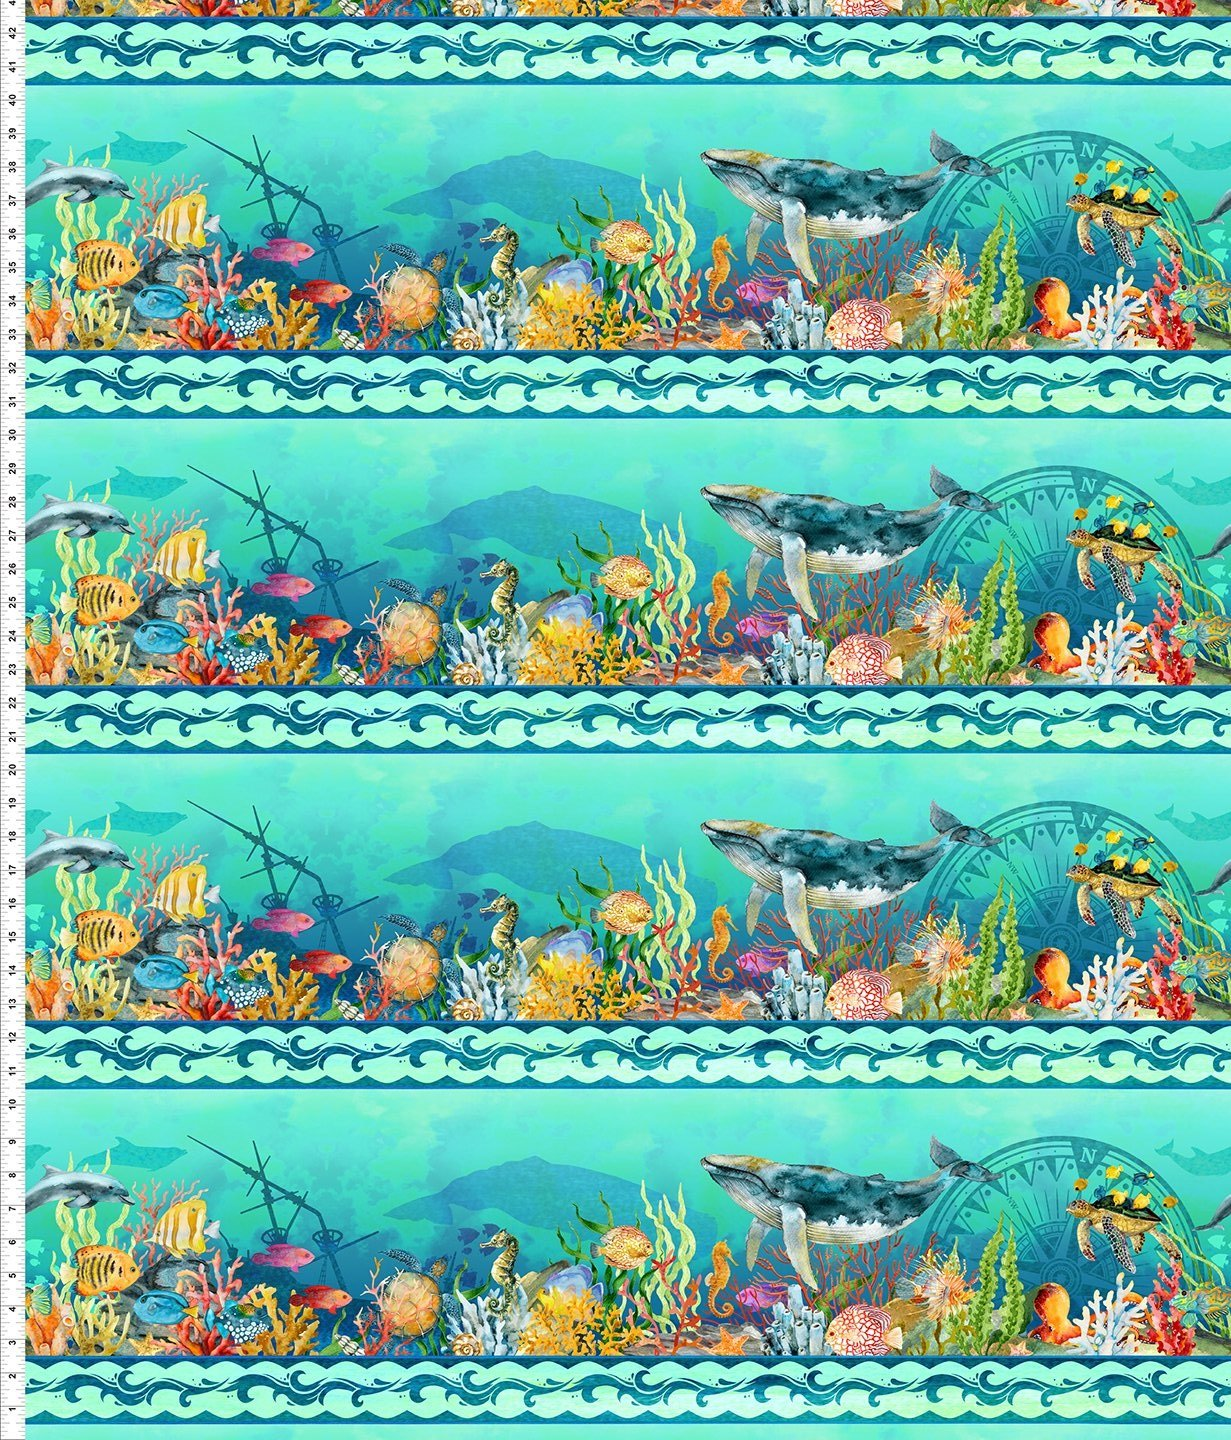 Calypso-sealife in aqua ocean border stripe